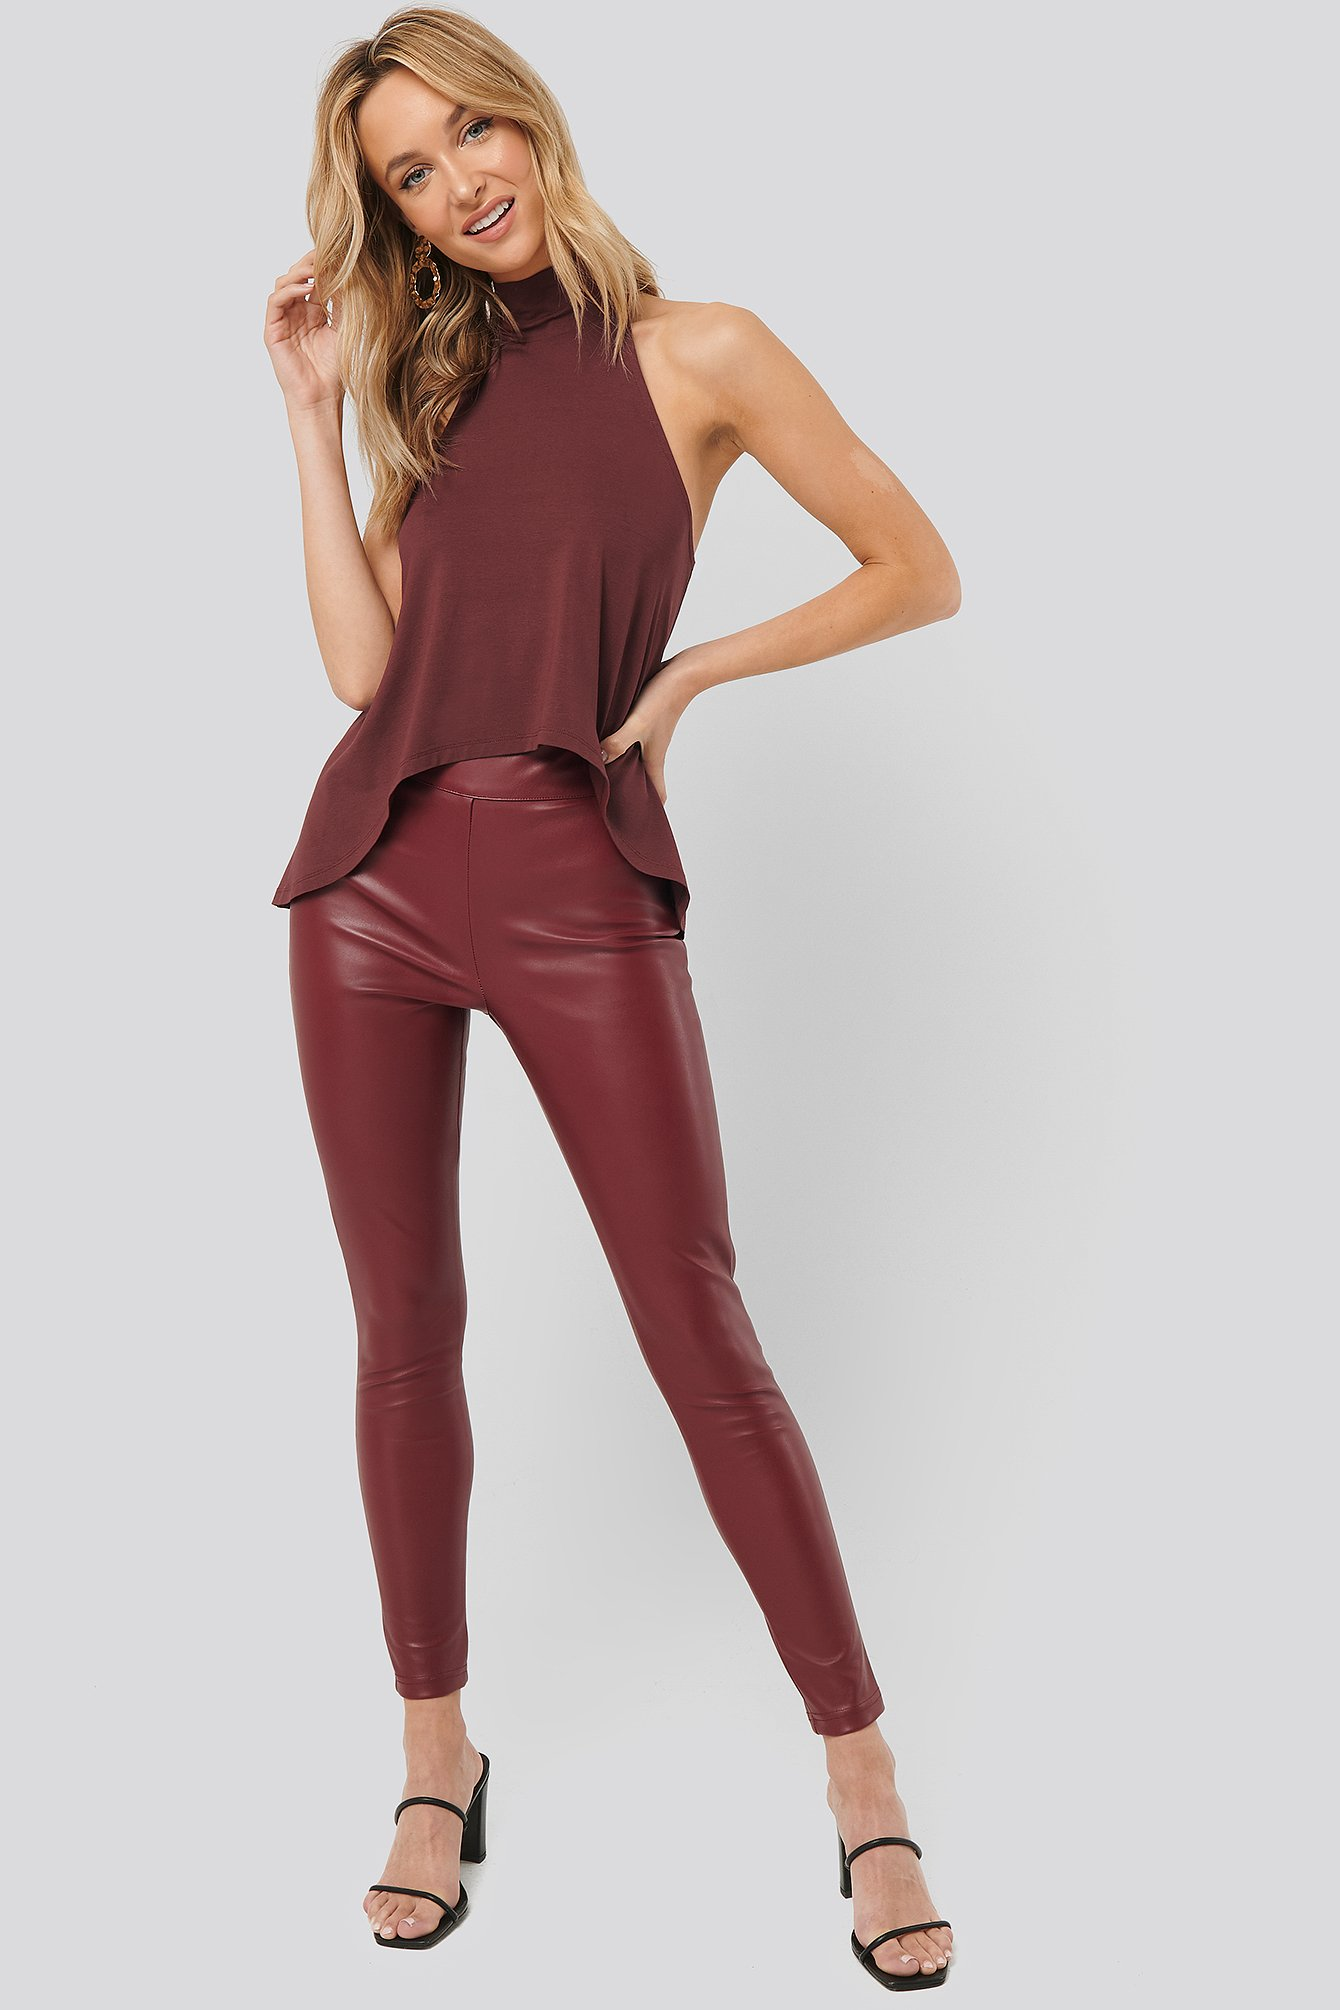 Burgundy PU Slim Pants